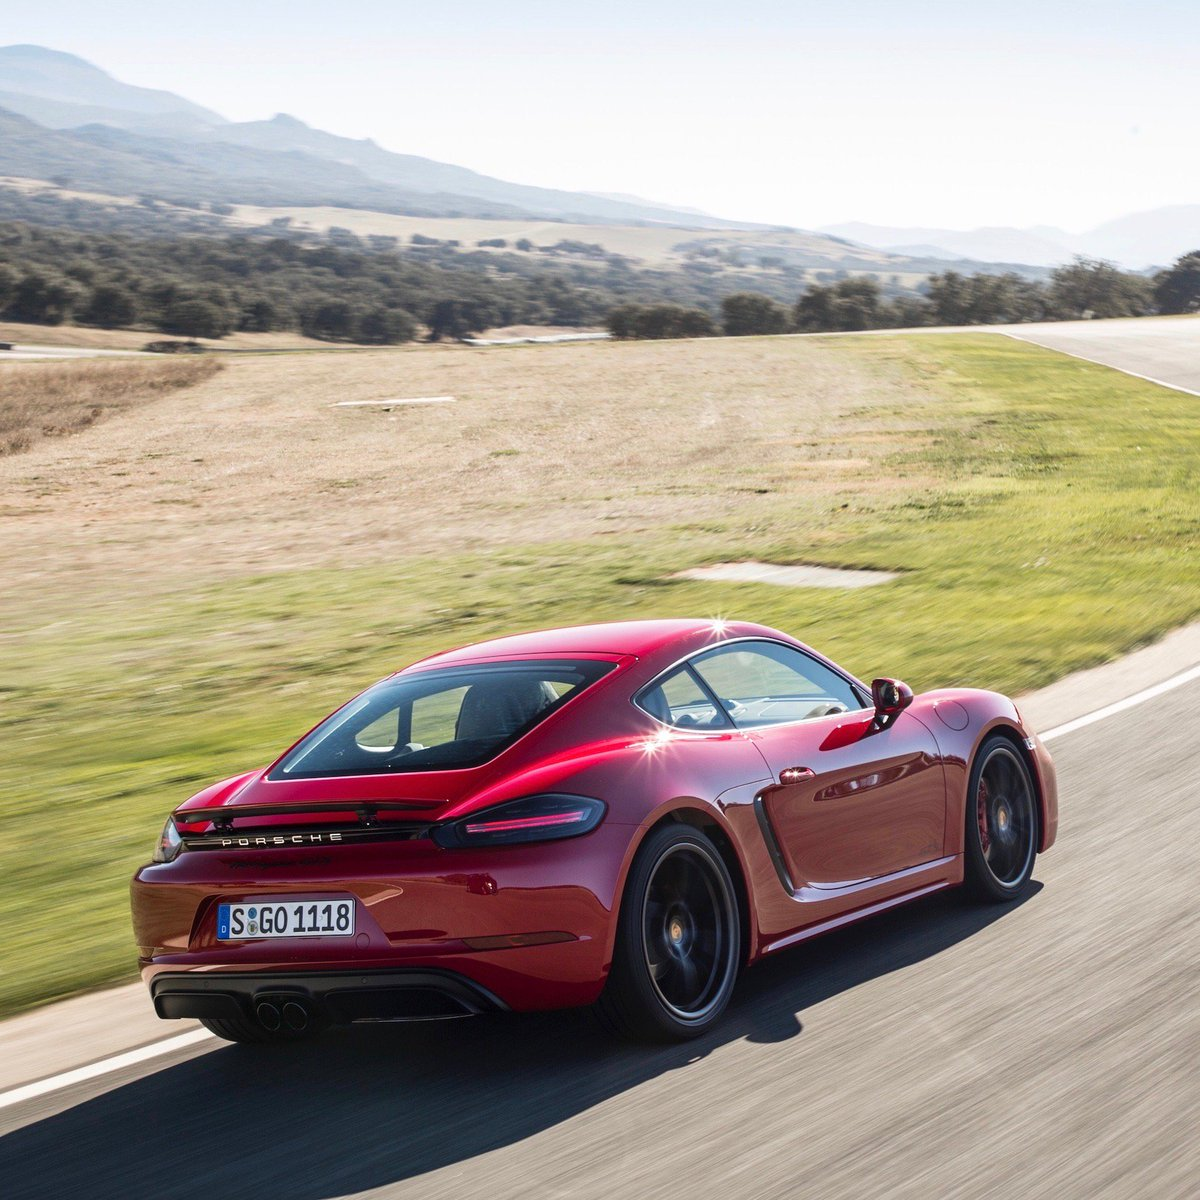 Porsche Newsroom On Twitter International Press Launch In Southern Spain With Porsche 718 Boxster Gts 718 Cayman Gts And Panamera Turbo S E Hybrid Sport Turismo More Https T Co 6lv8rcbiup Https T Co Lc5sgdegba